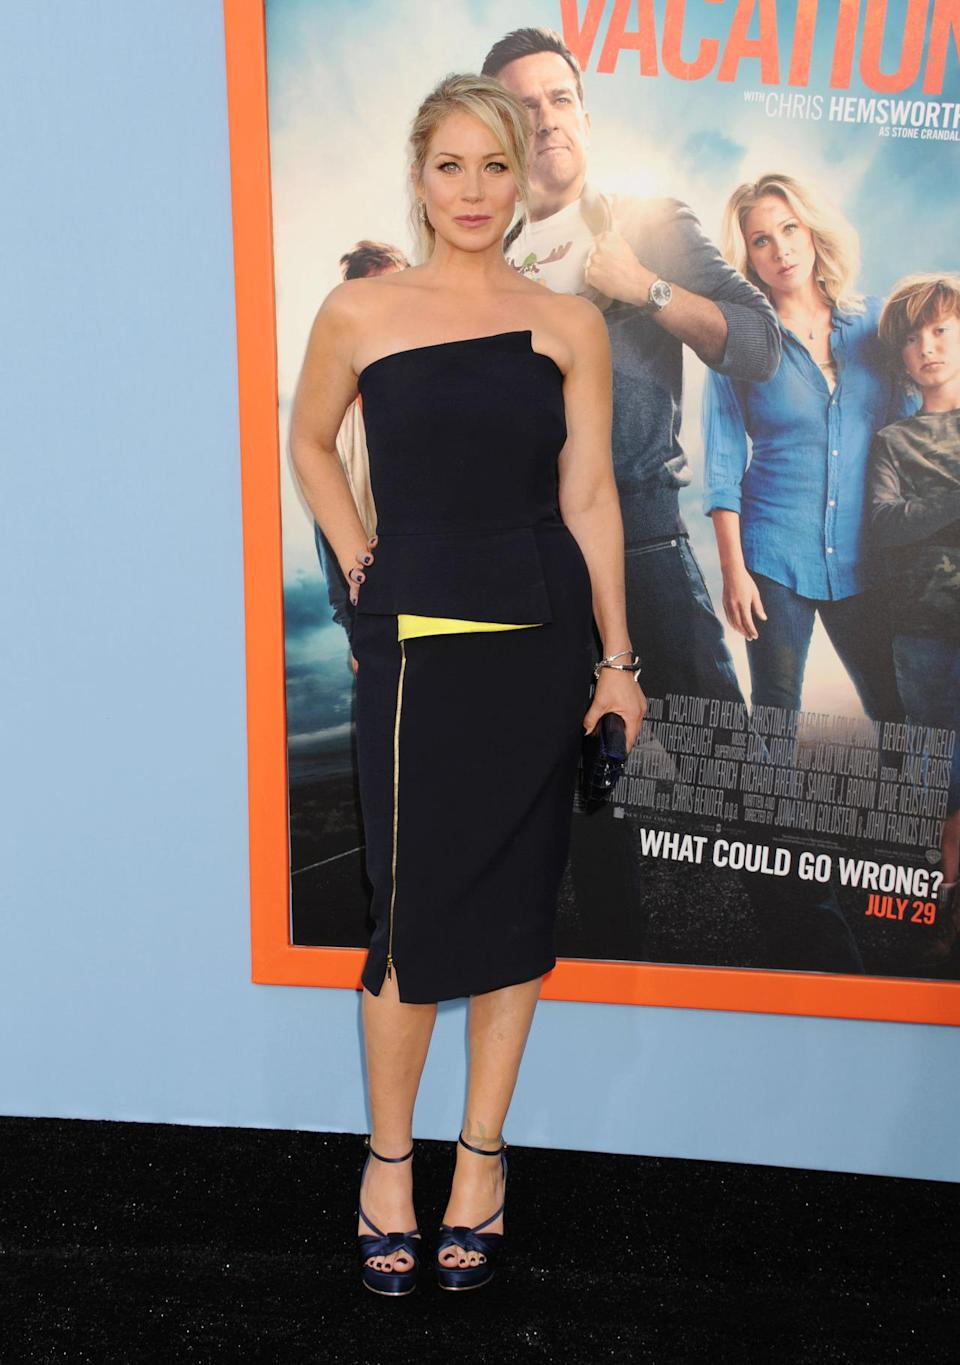 <p>The comedic actress looked divine in a strapless LBD at the premiere of her film <i>Vacation</i>.<br><br></p>